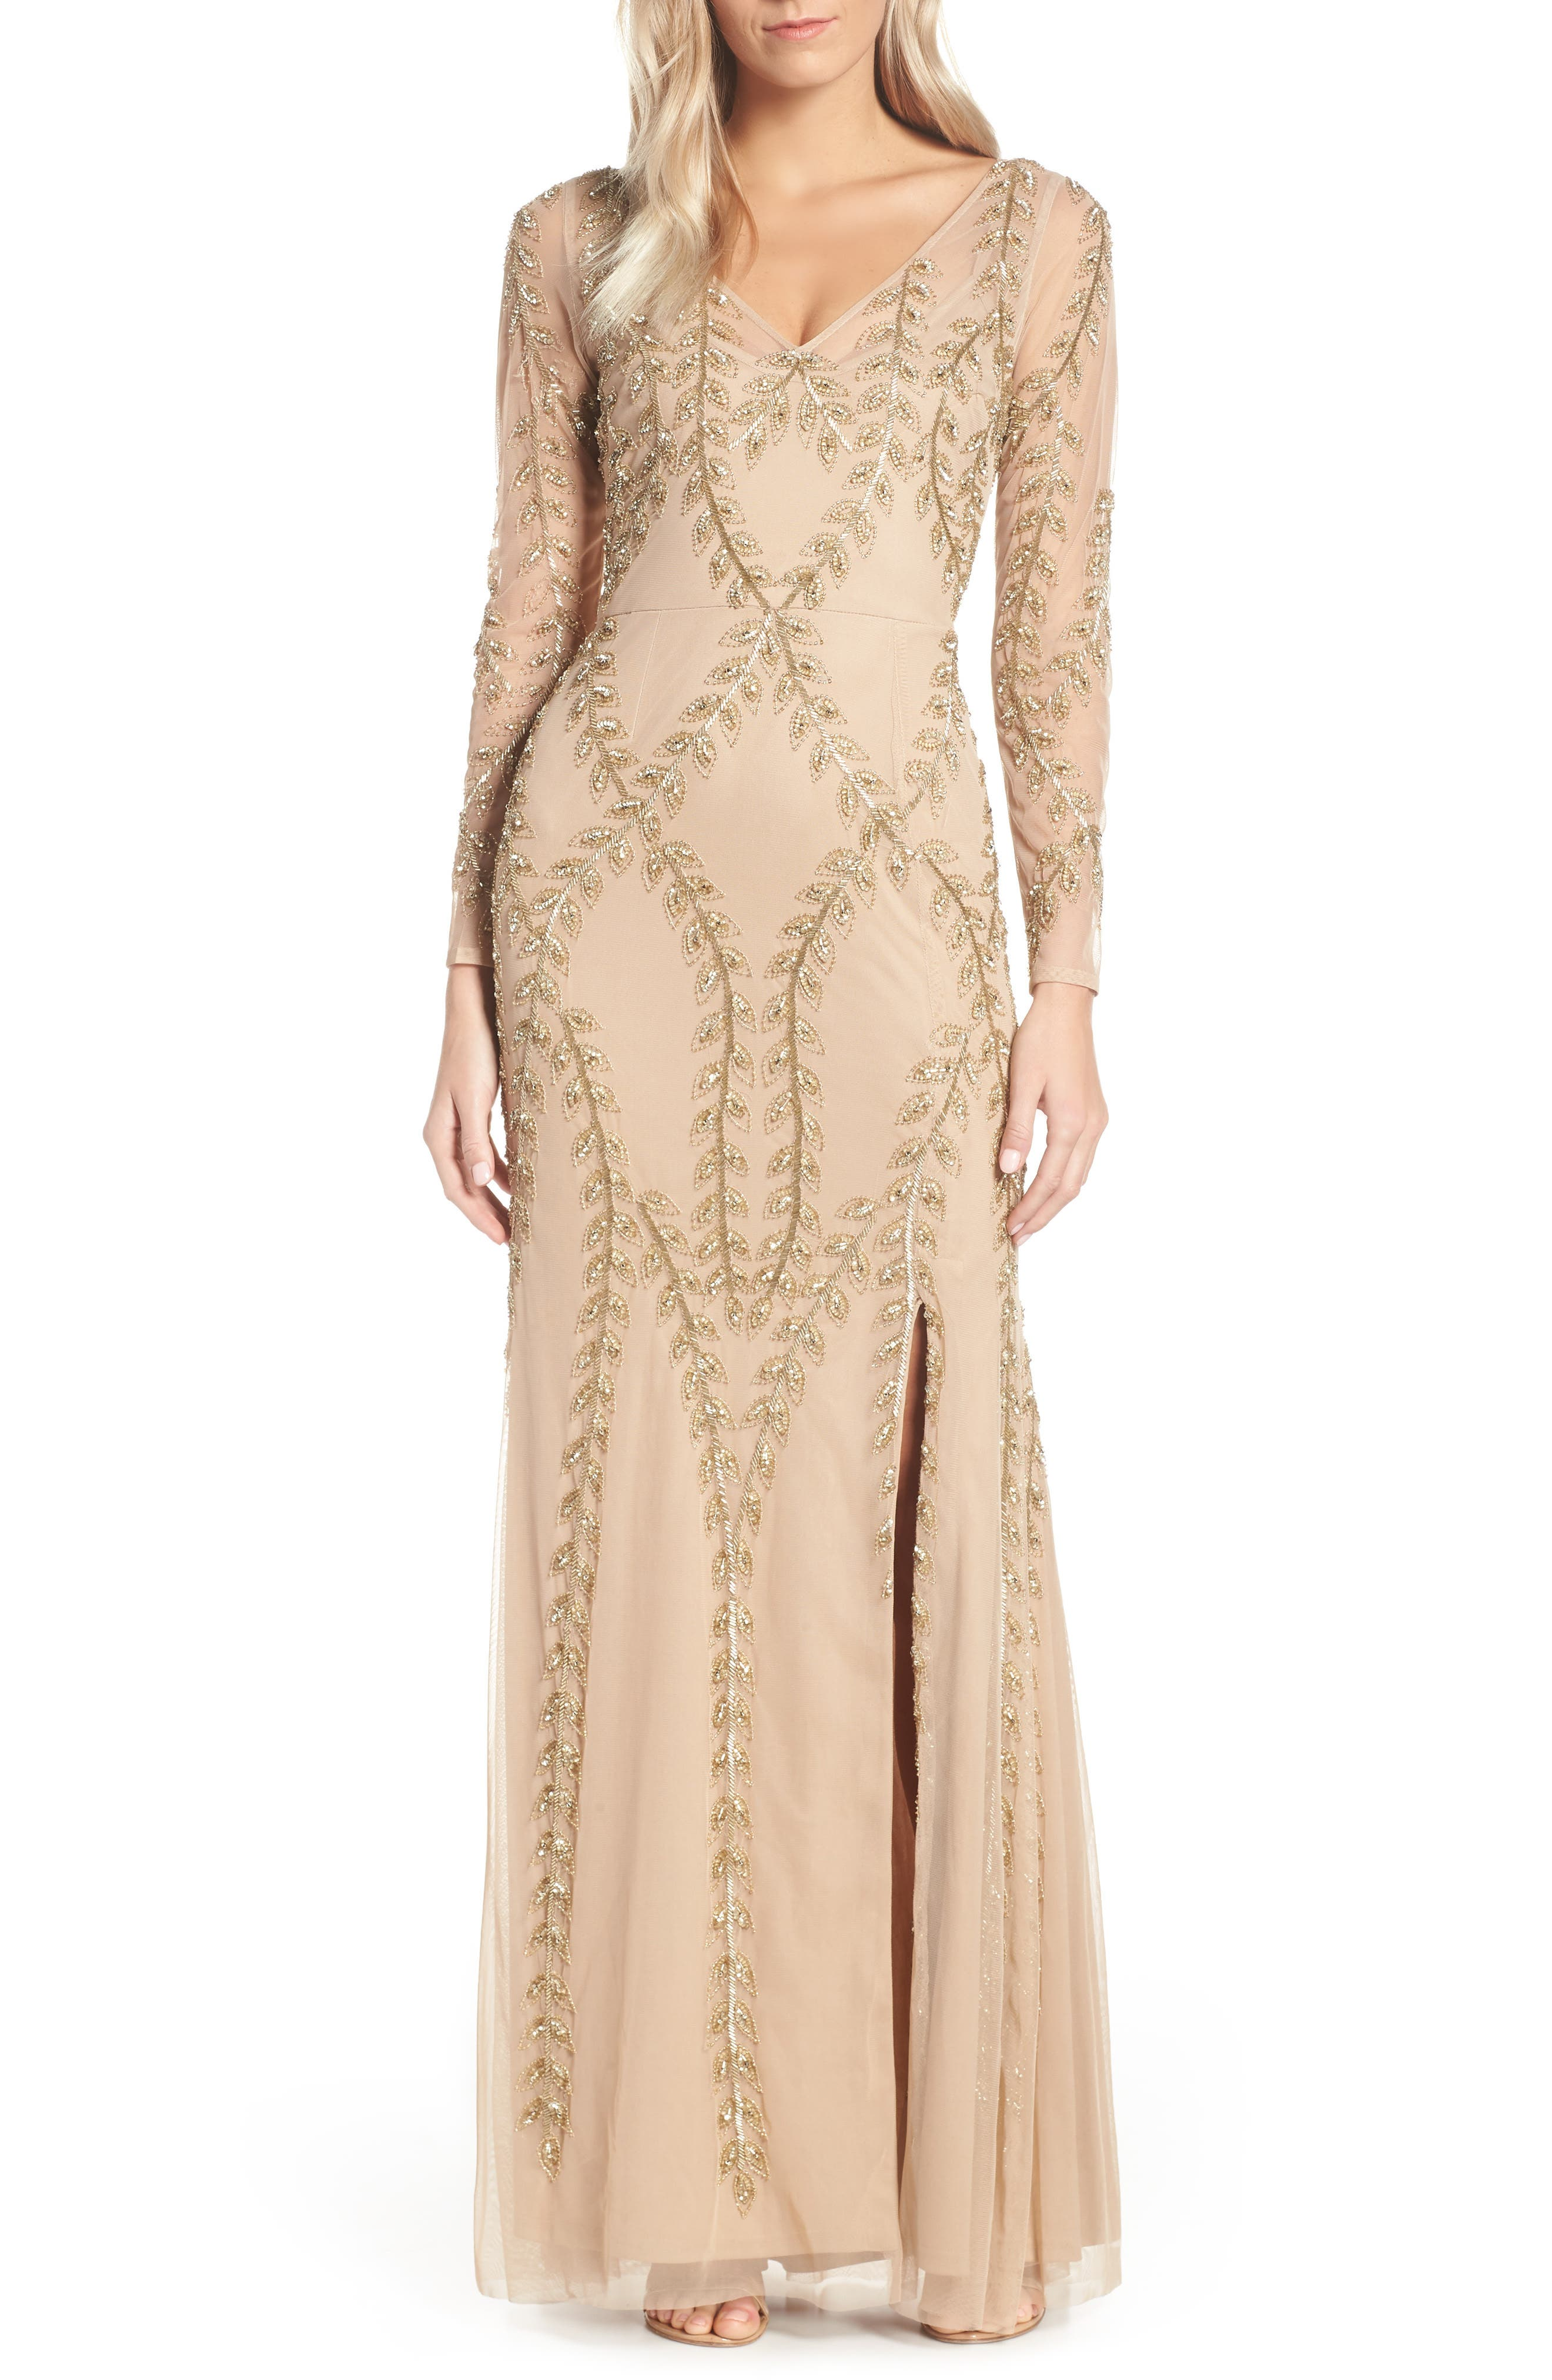 ADRIANNA PAPELL Fern Beaded Gown, Main, color, CHAMPAGNE/ GOLD